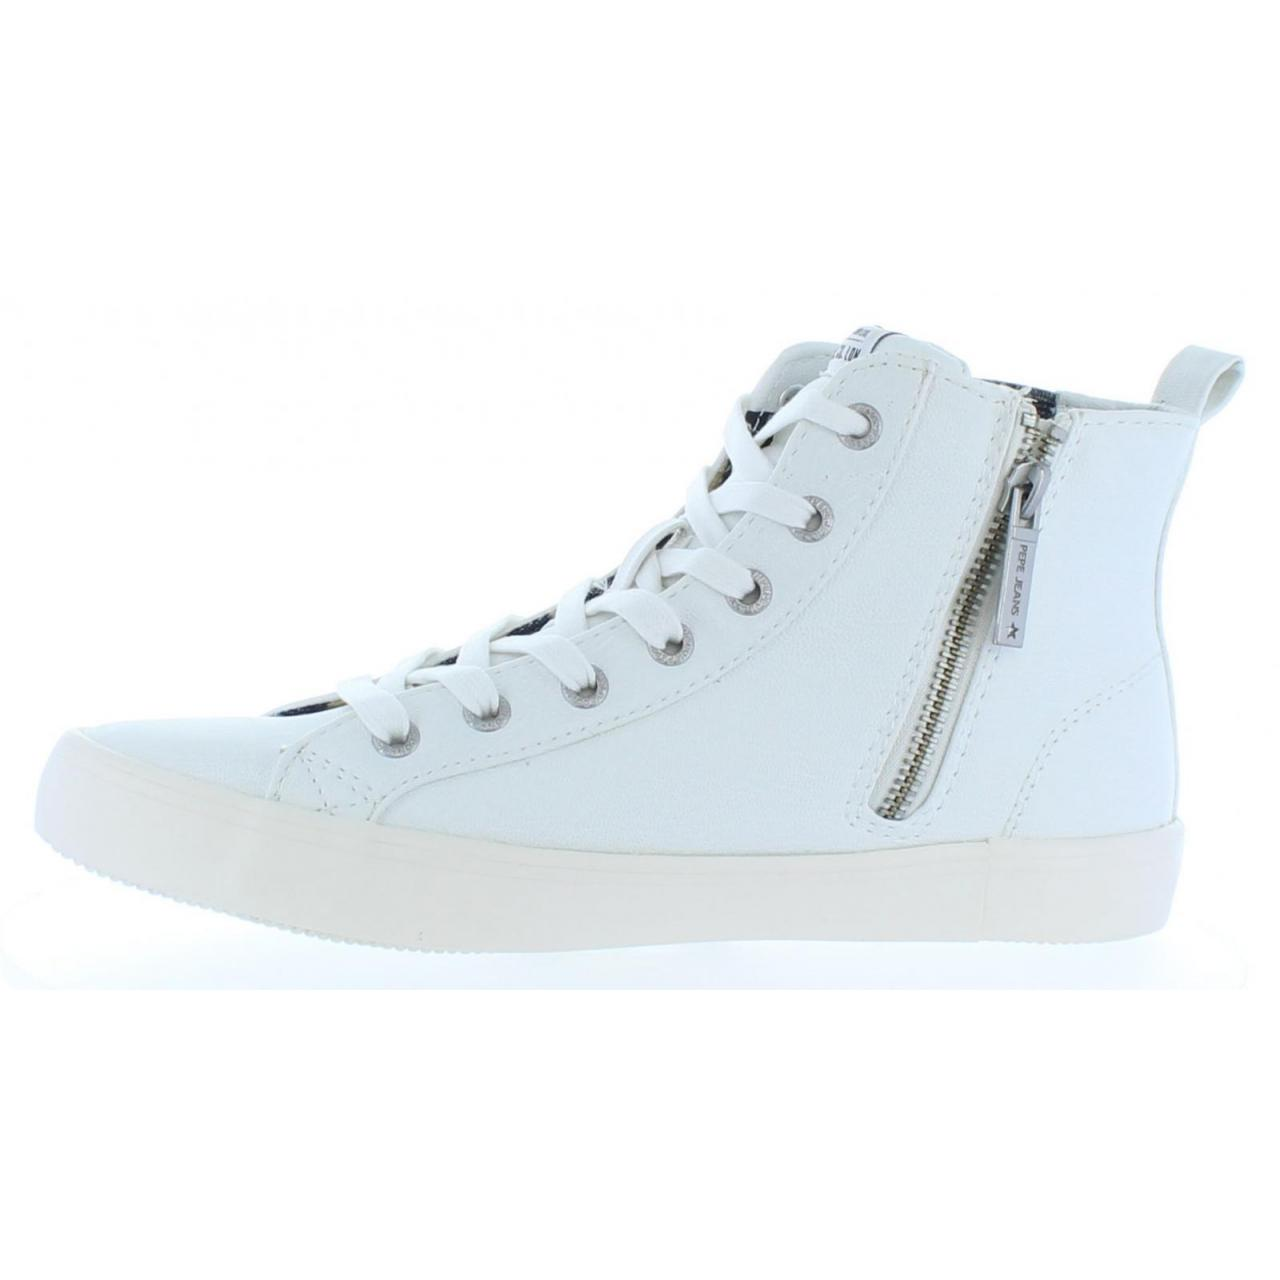 Botines Pepe Jeans Blanco - PLS30361 CLINTON 800 WEISS